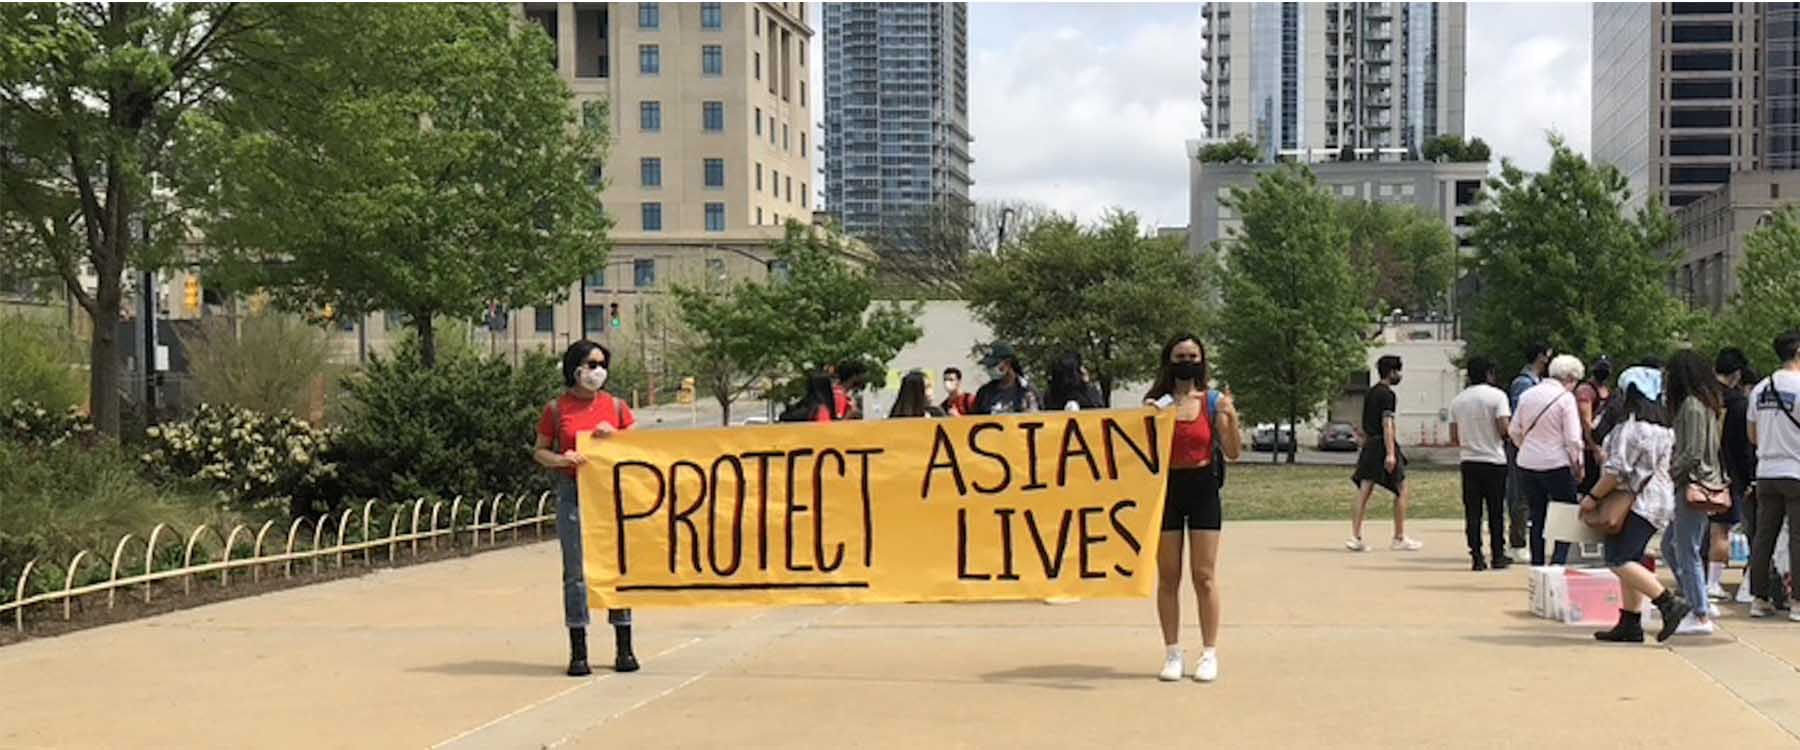 n Saturday, April 10, UNC Charlotte students, faculty, staff and leaders marched to protect Asian lives.